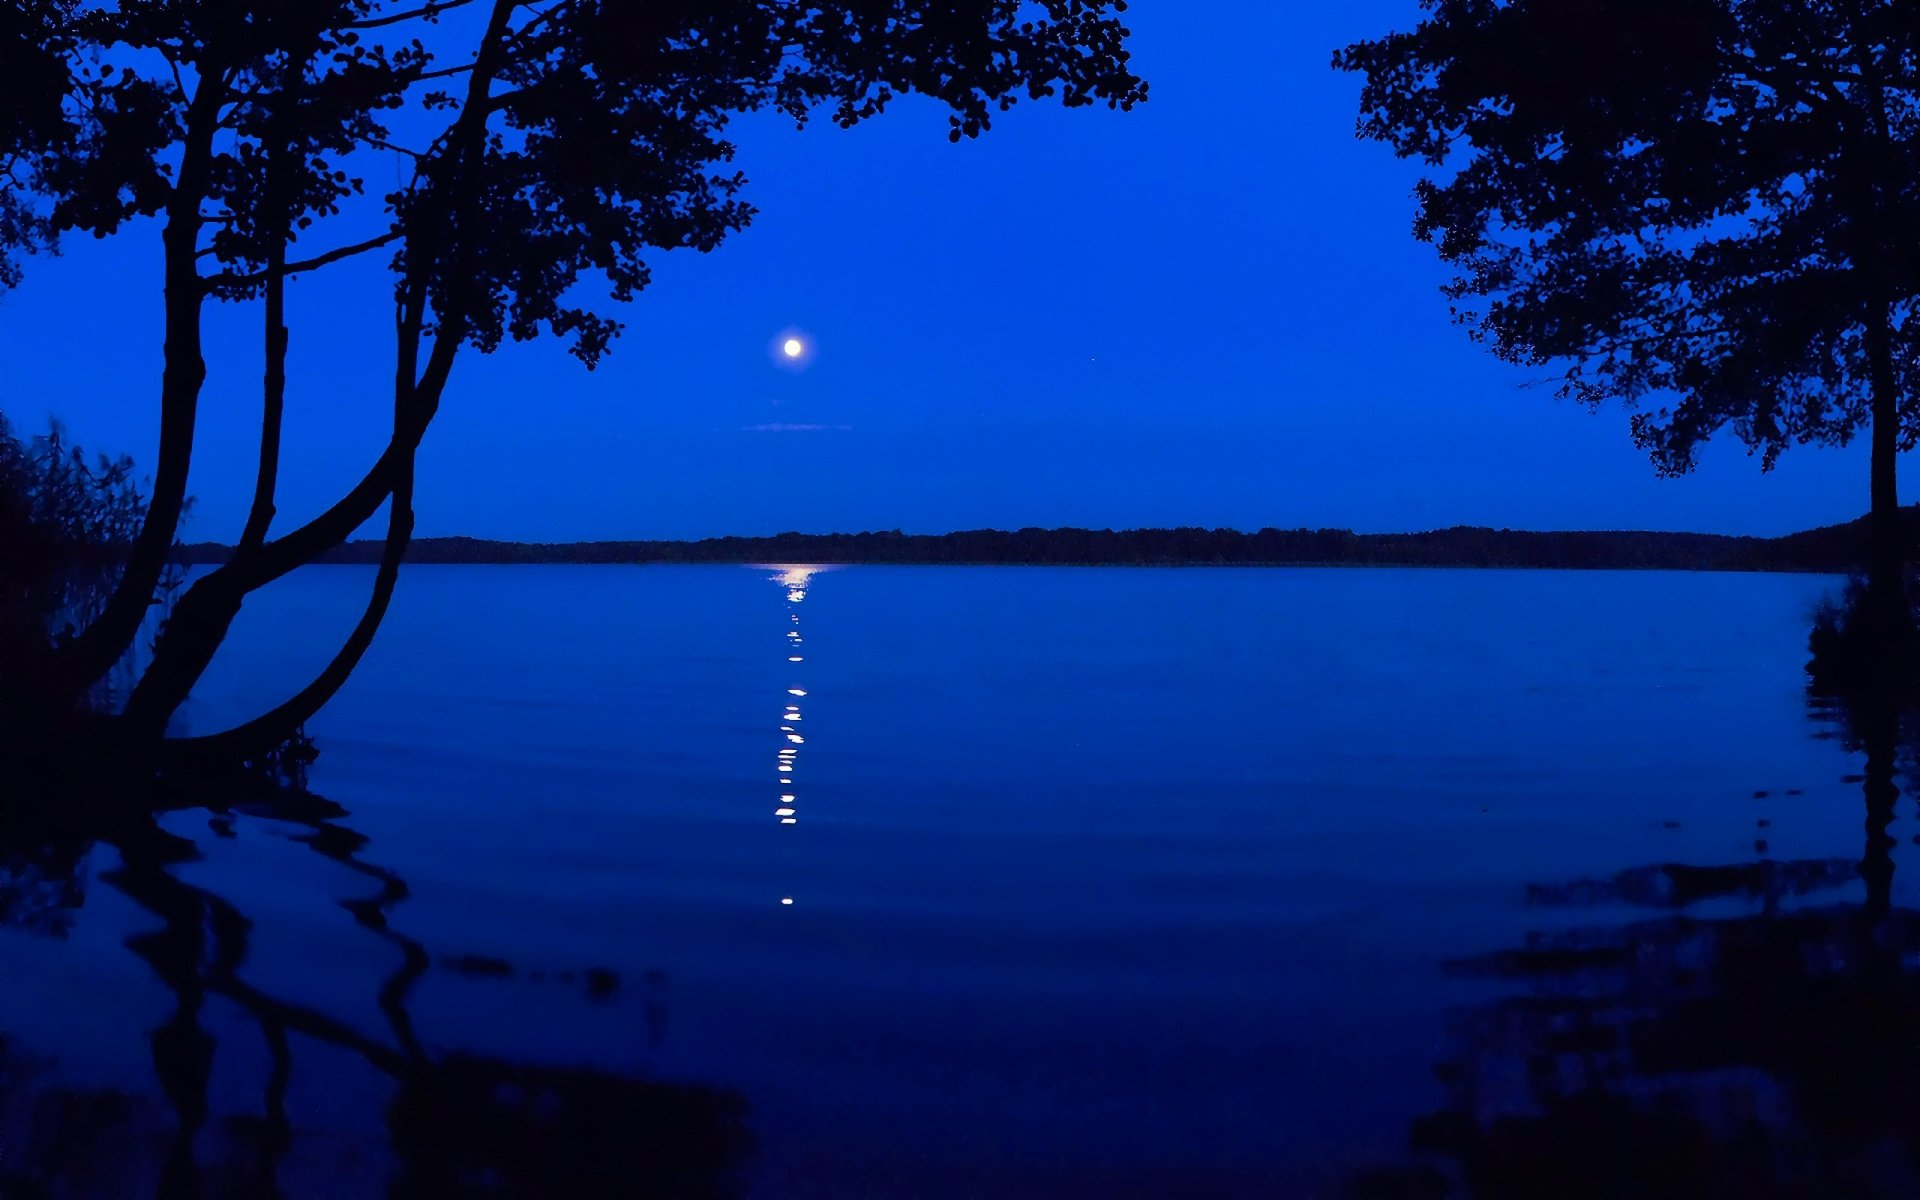 Earth - Lake  Blue Water Moon Reflection Wallpaper